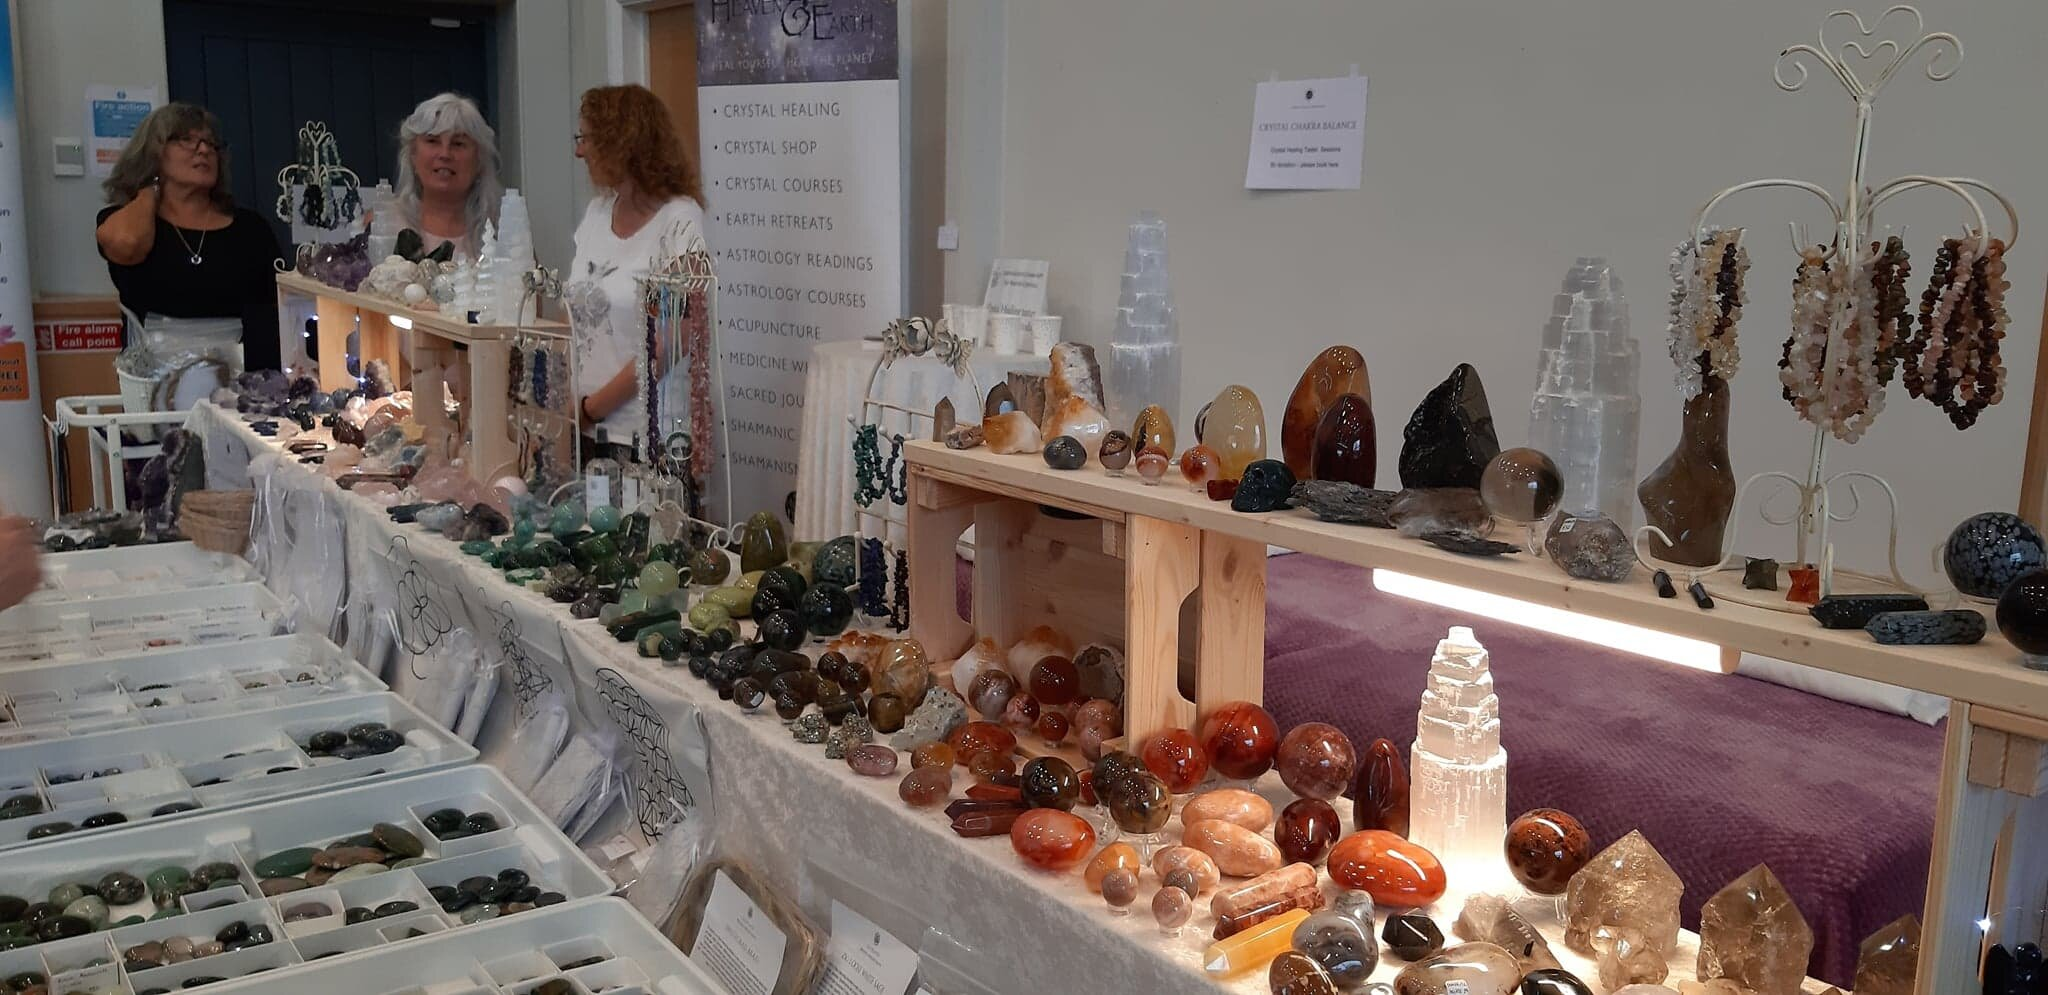 Photographs_Stalls_2010 Sept HLF3.jpg